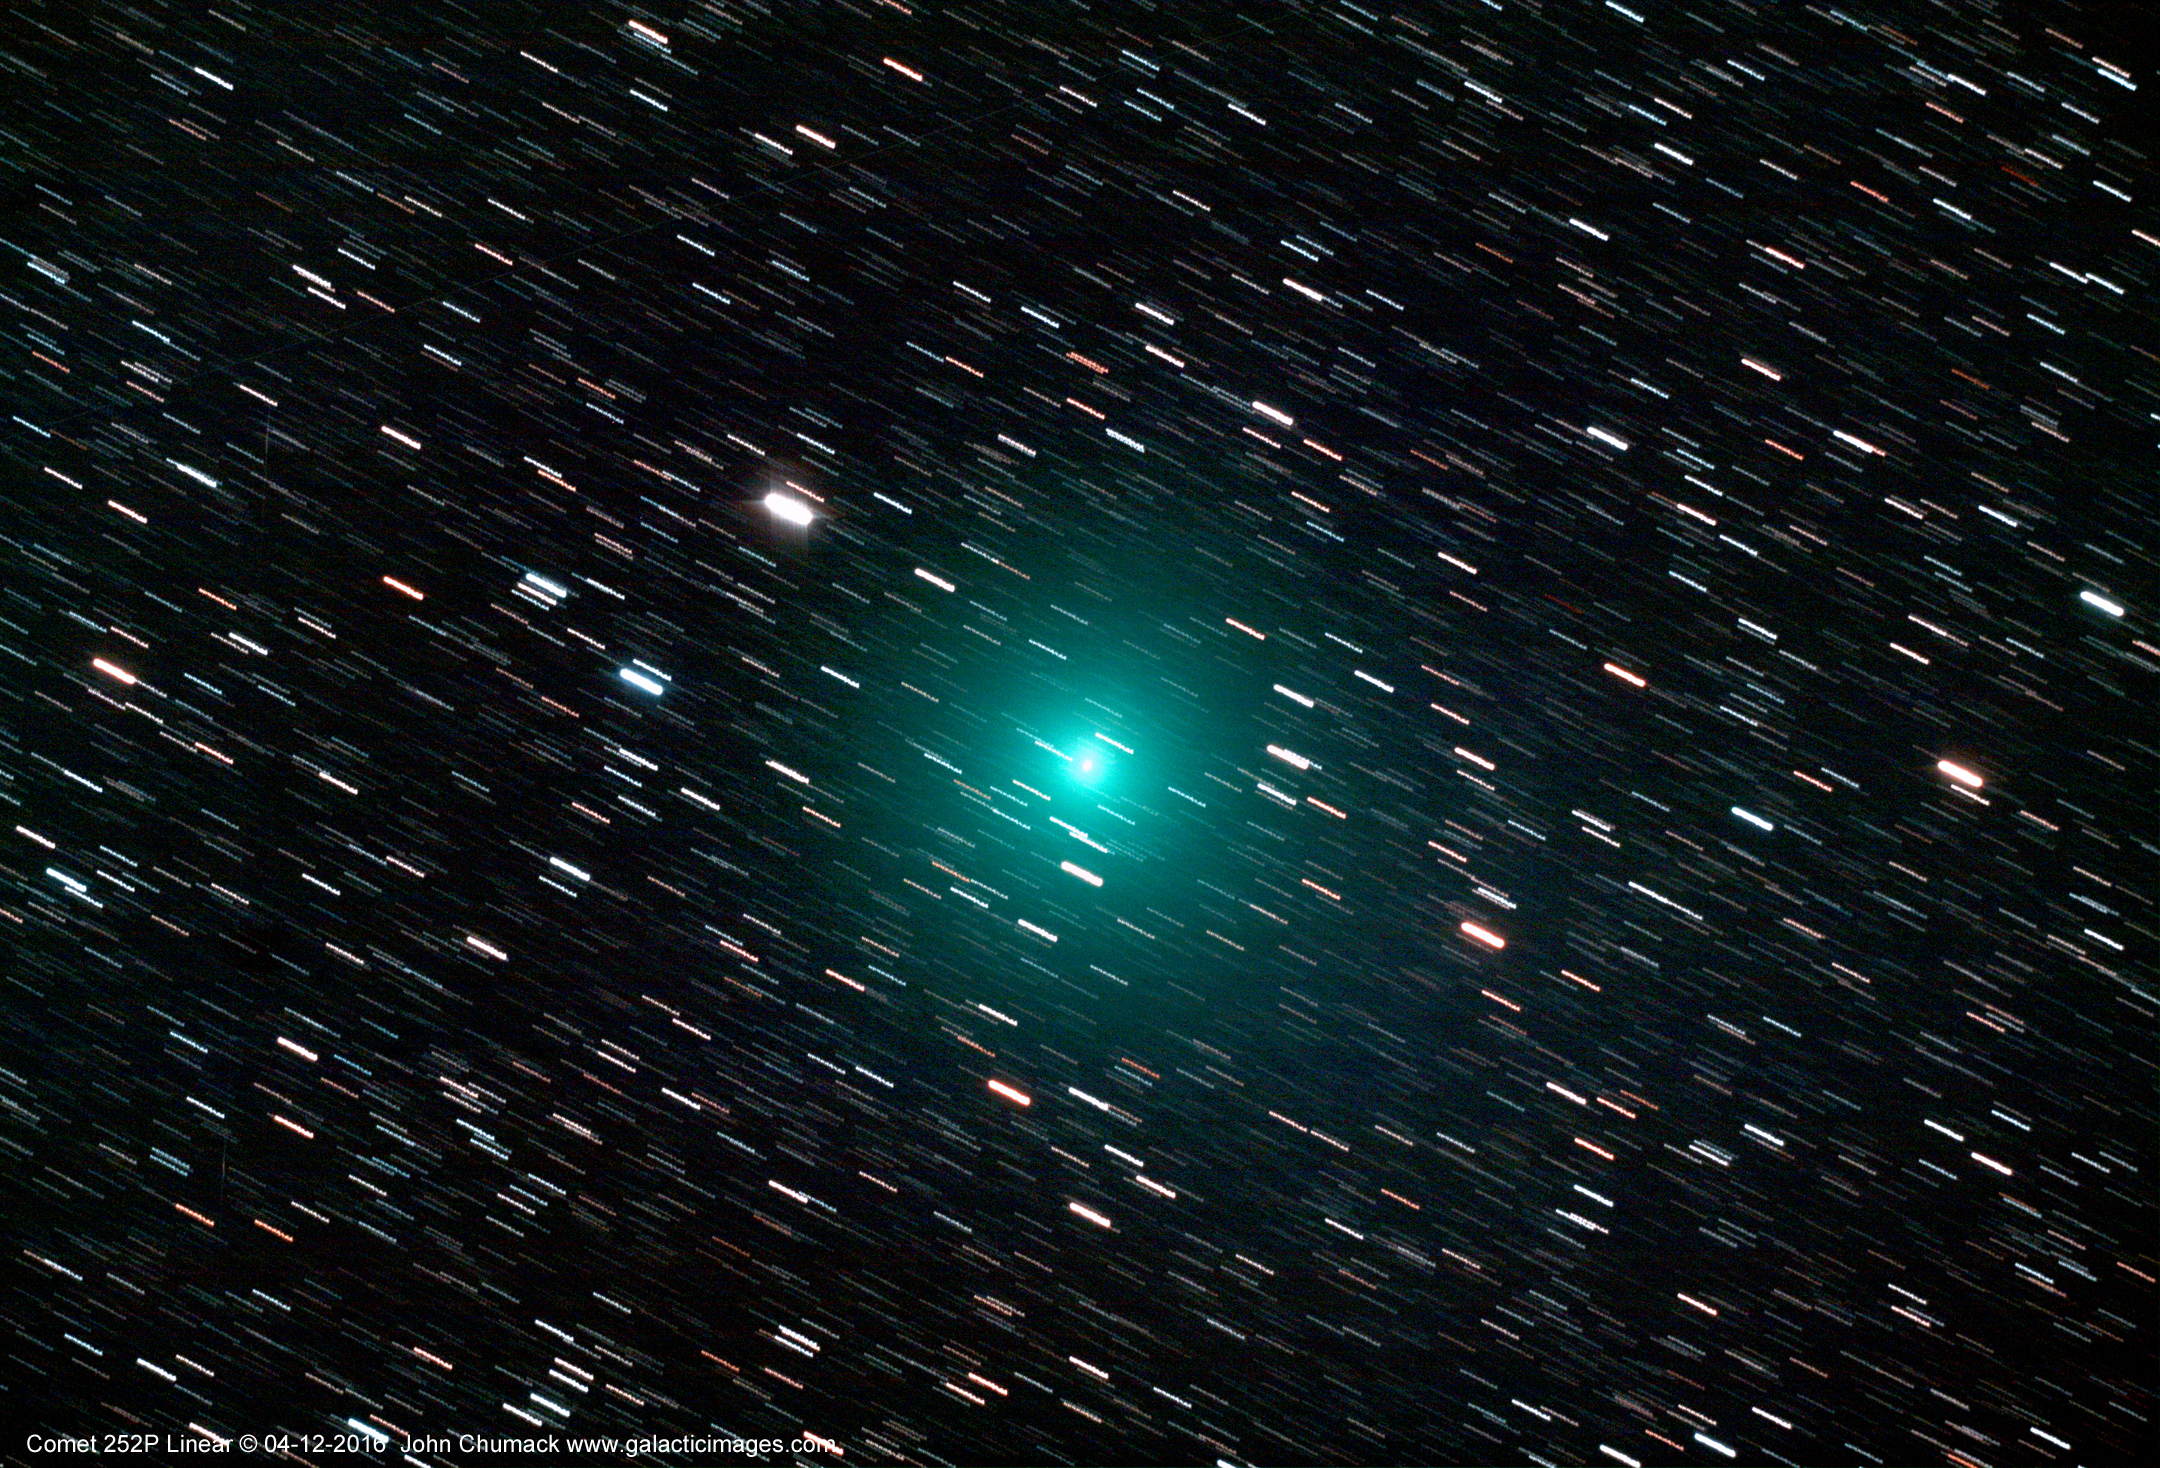 Green Comet Thrills Amateur Astronomer (Photo)